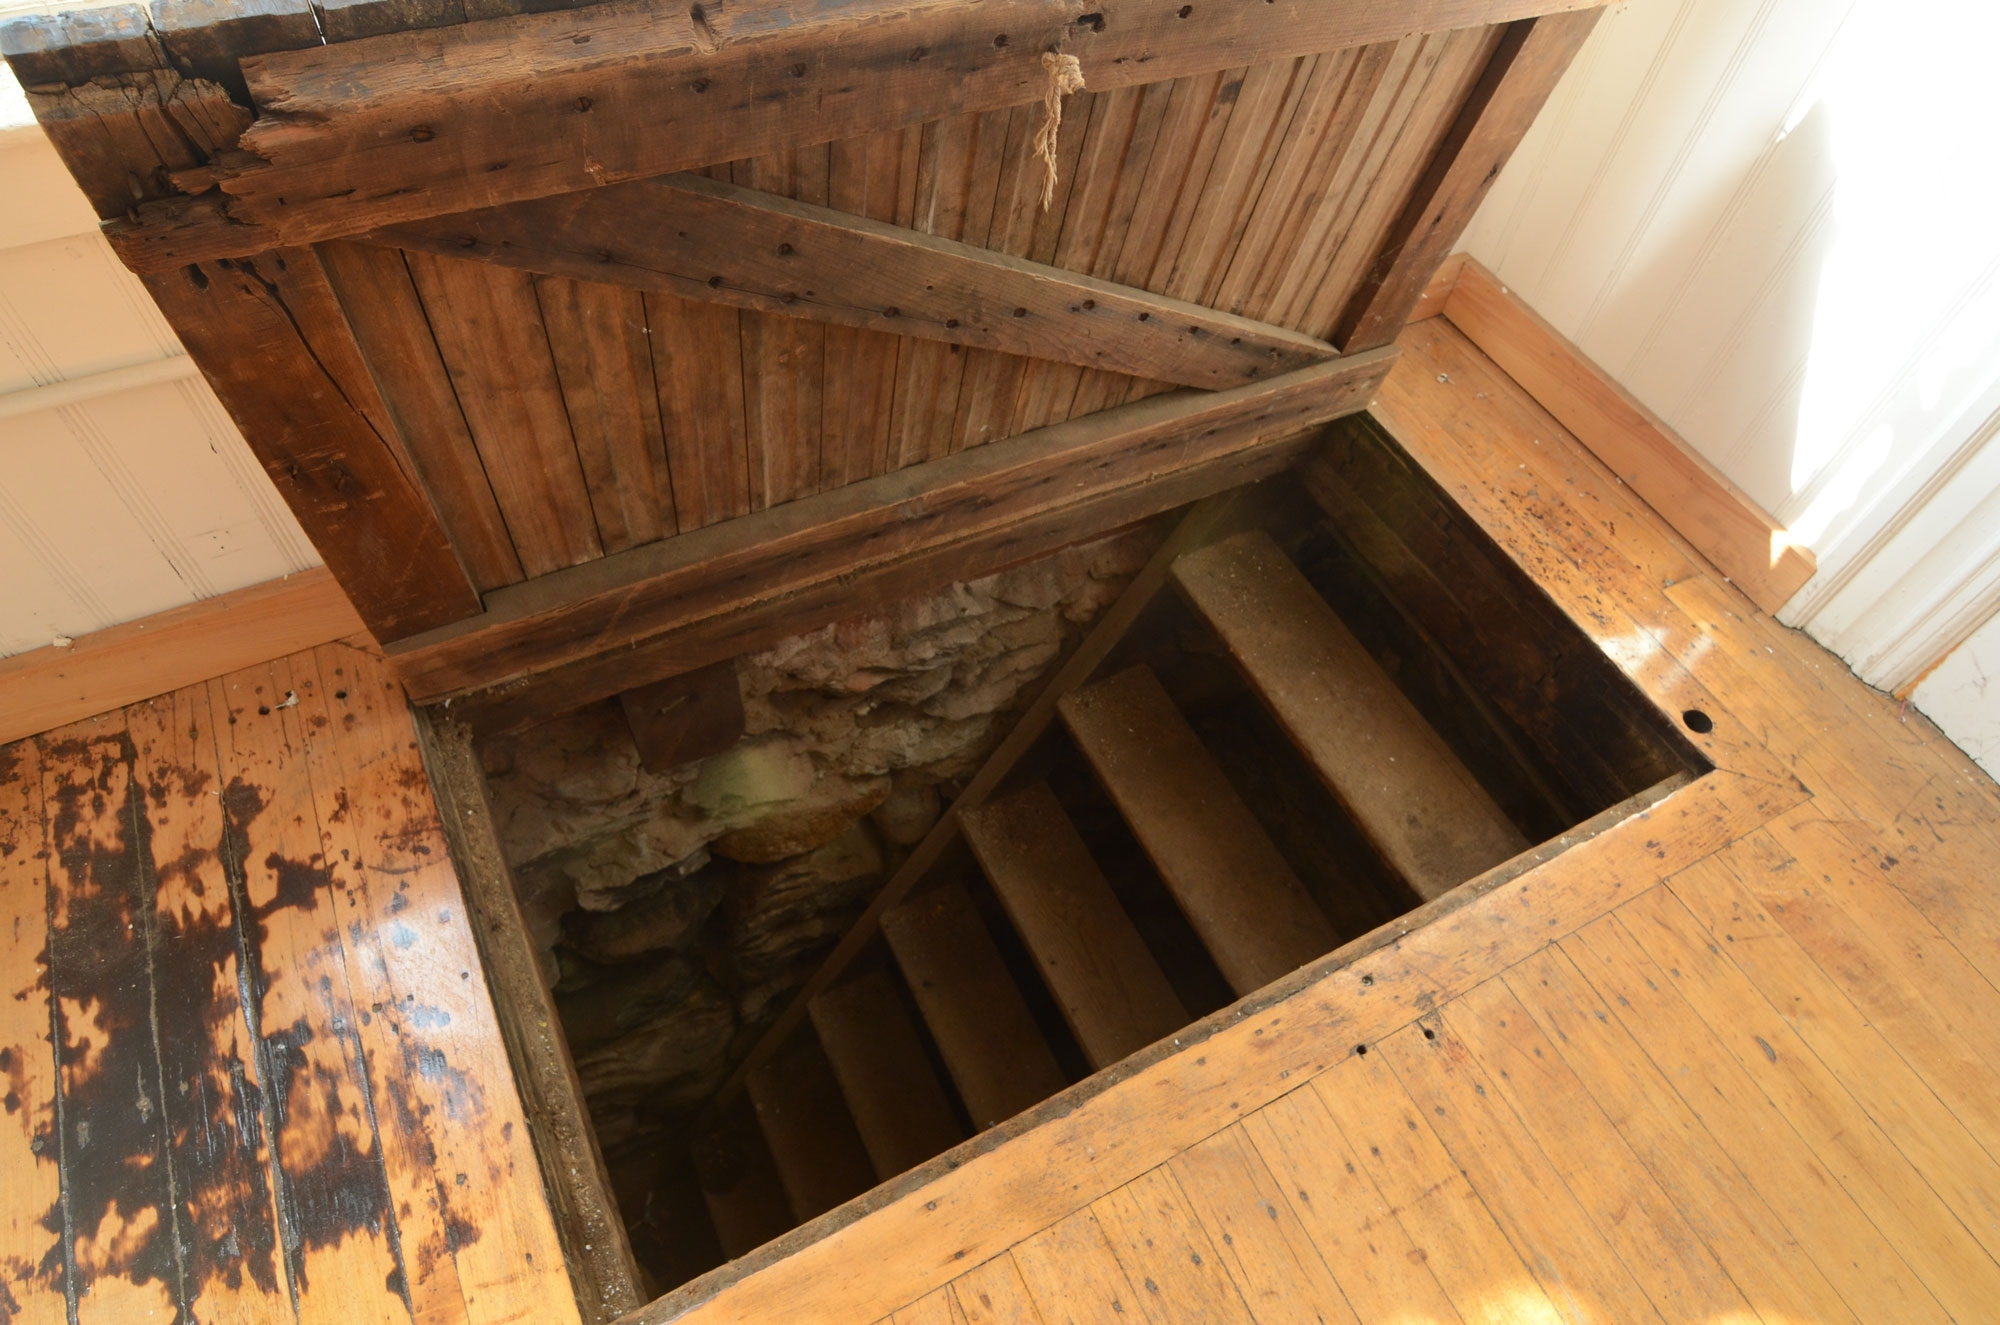 Basement Trap Door Openerhis dad was moving into an office when they discovered a secret